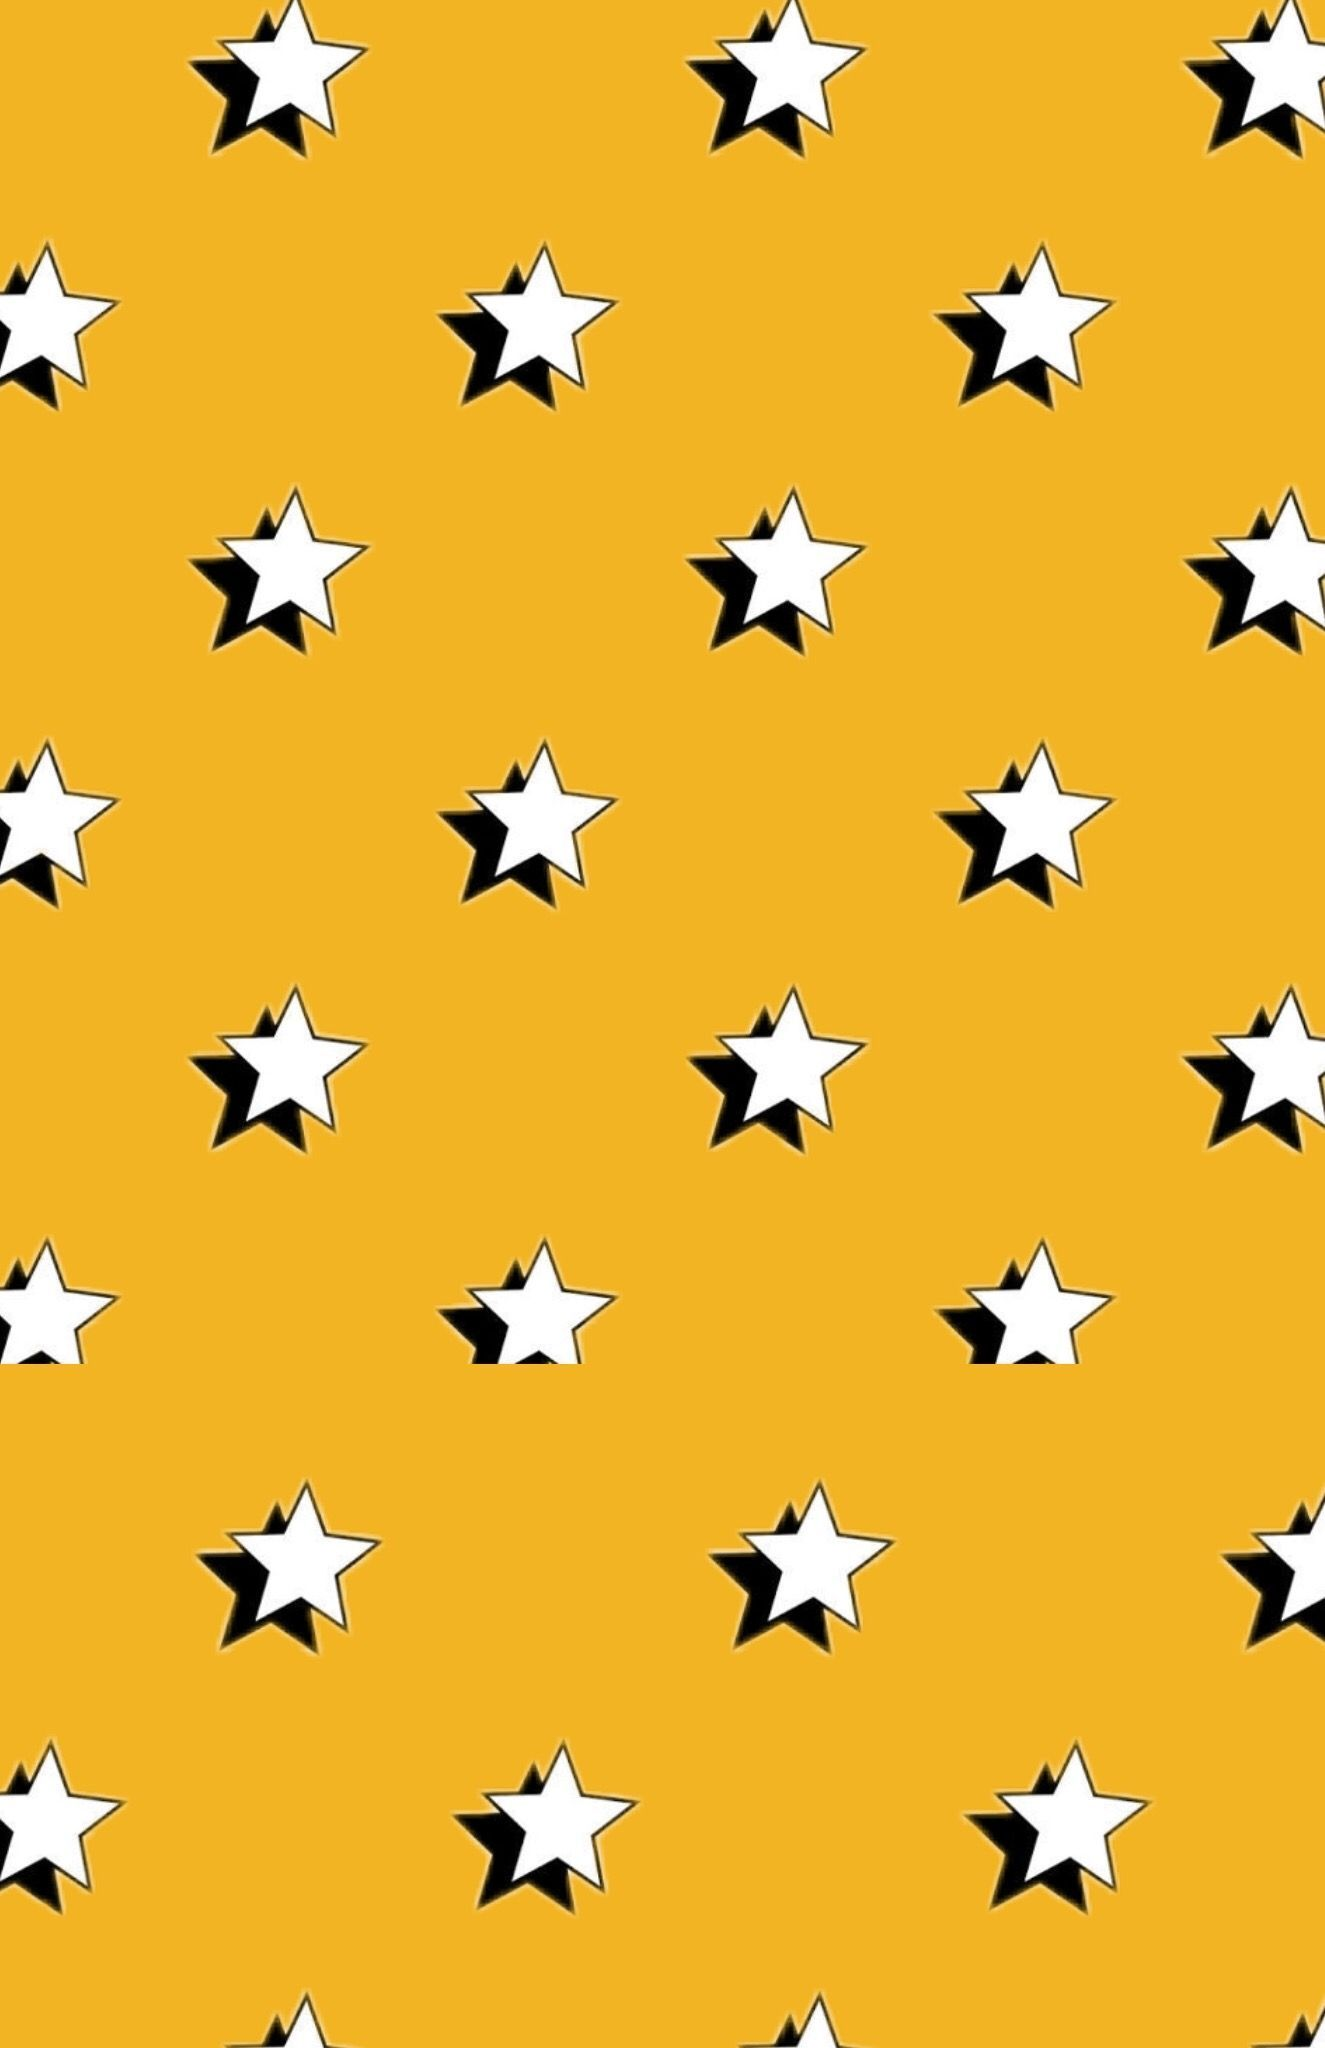 Star Aesthetic Wallpaper : aesthetic, wallpaper, Aesthetic, Stars, Wallpapers, Wallpaper